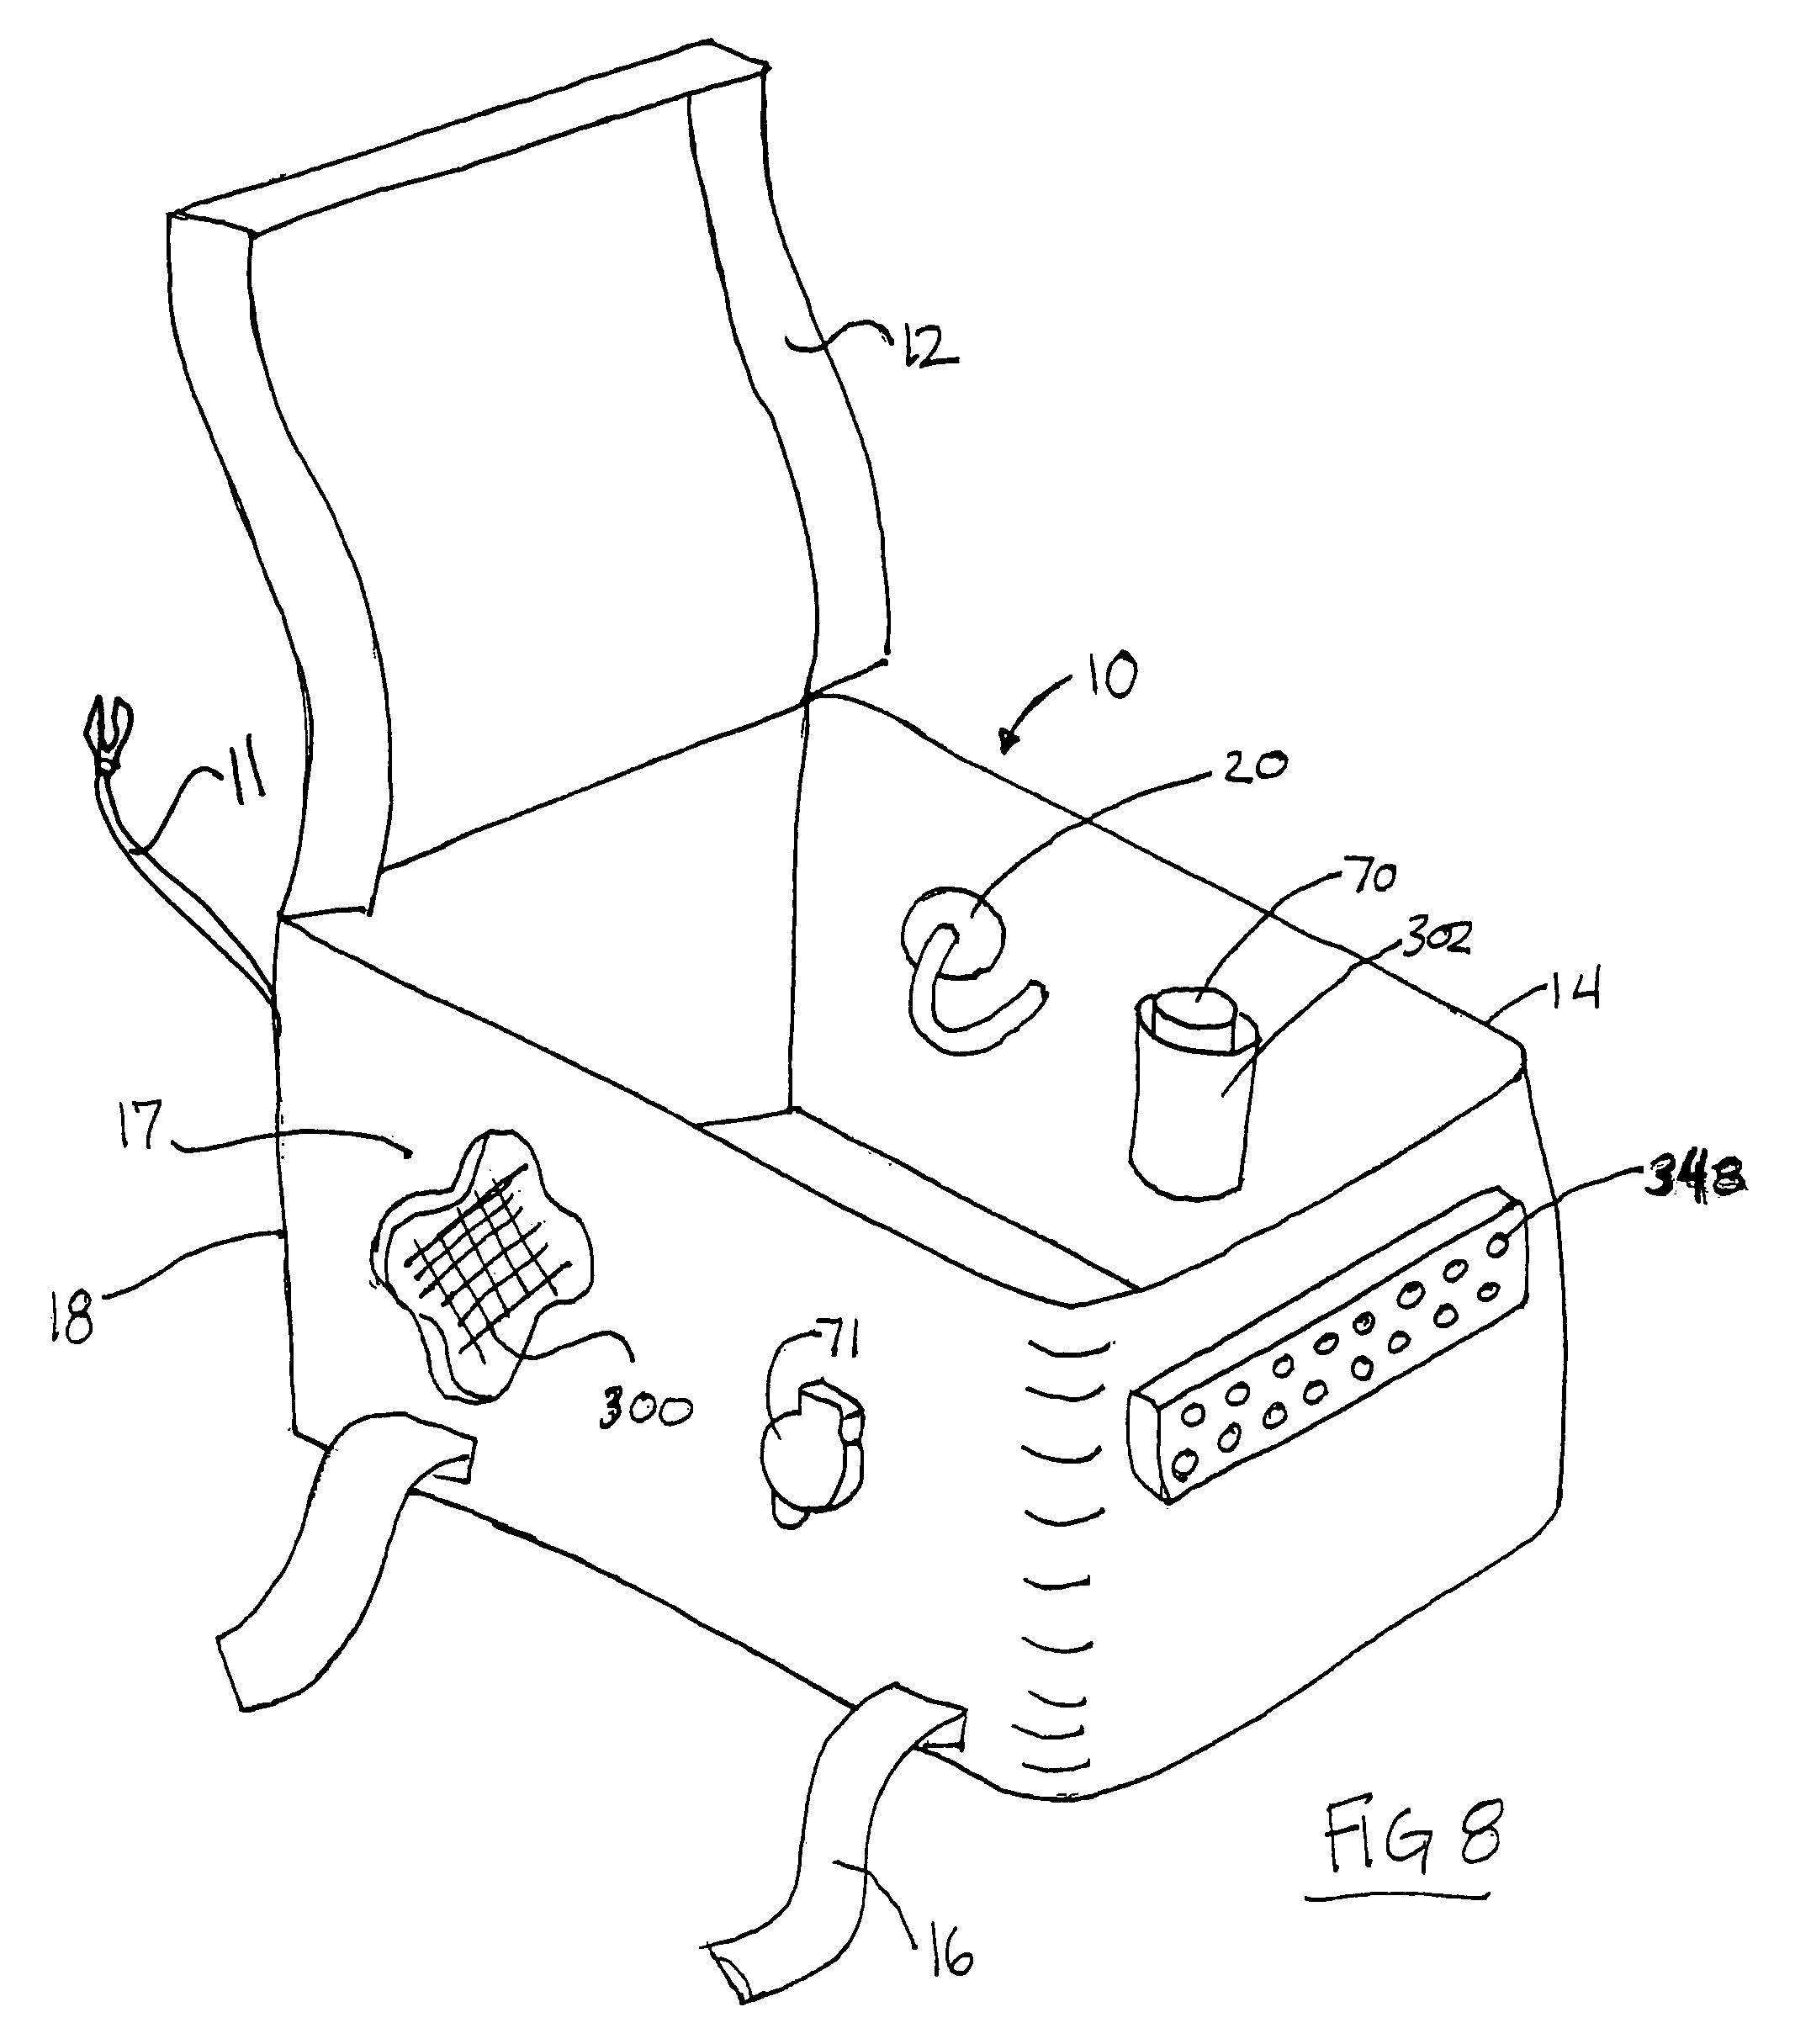 patent us7198512 - power distribution for luggage